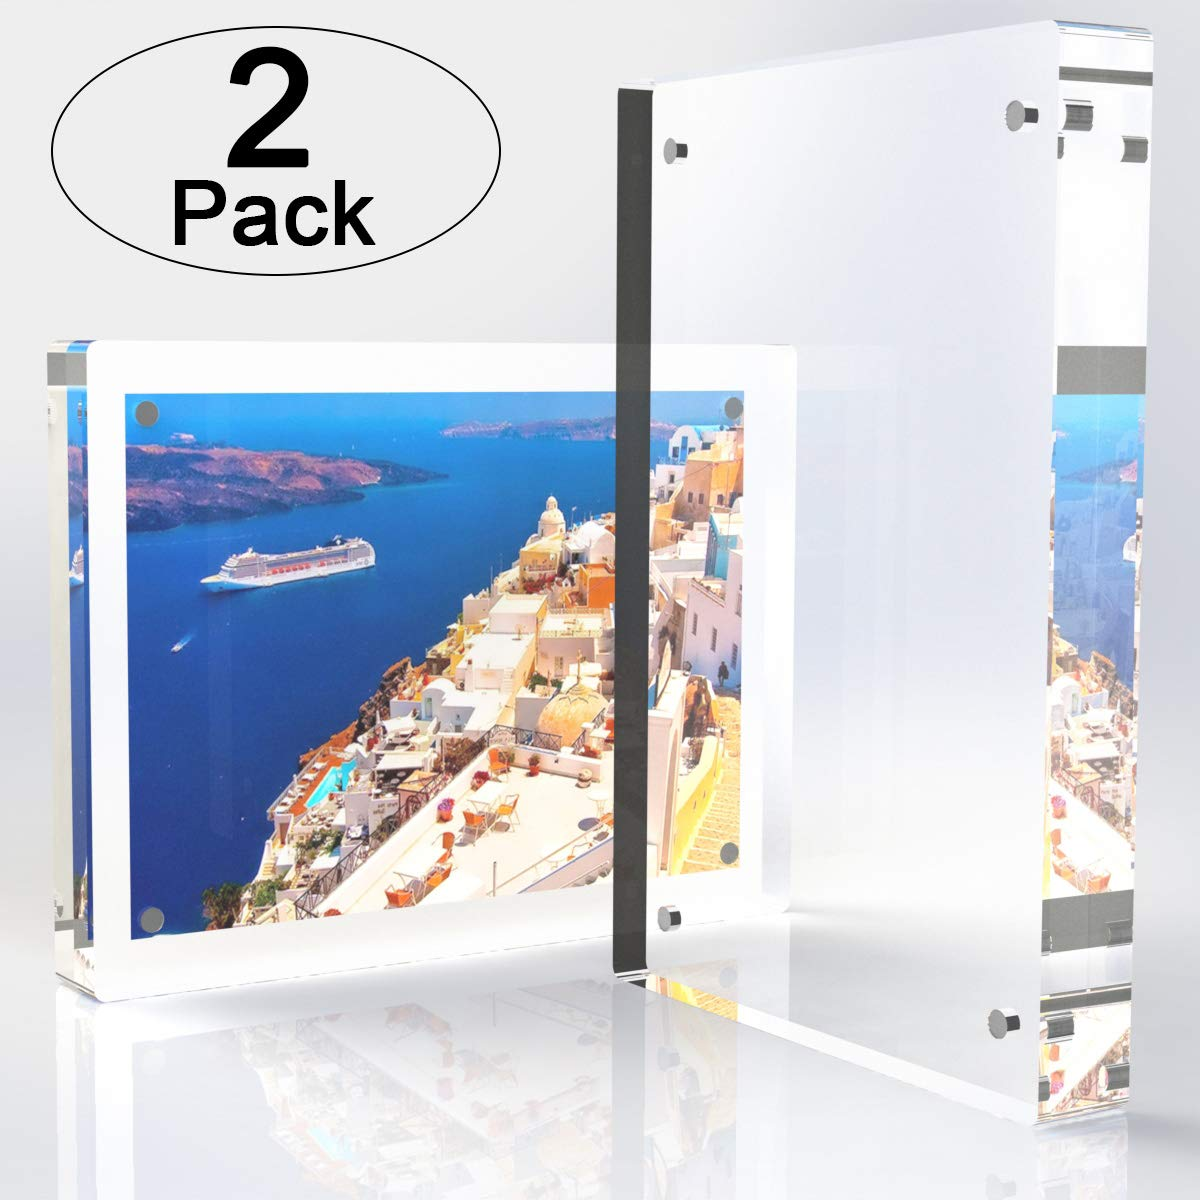 Tomorotec 2-Pack [5 x 7 inch] High Transparency Magnetic Picture Frames Frameless, Acrylic Photo Frame Double Sided Free Standing Desktop Display Stand(2 Pack) by Tomorotec